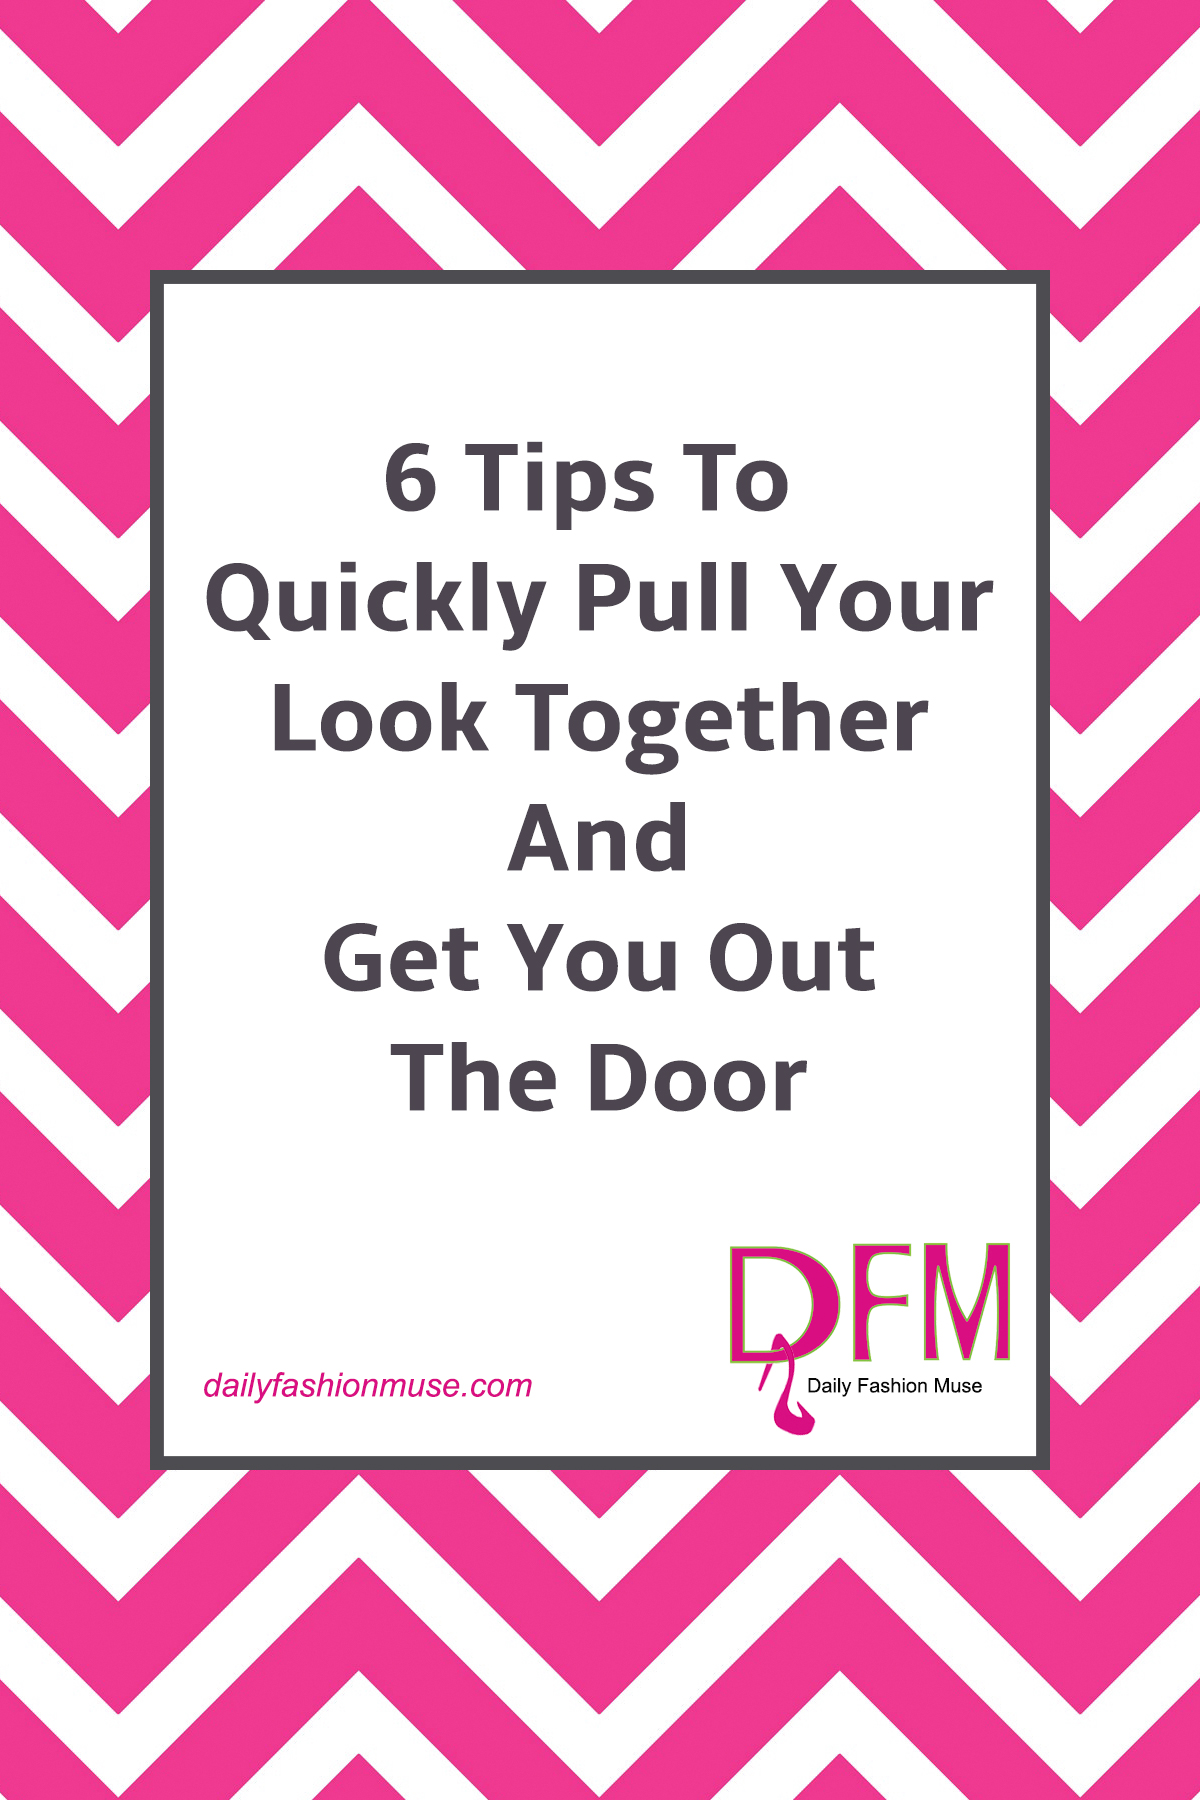 If getting ready in the morning is nothing short of complete chaos, try these 6 tips to quickly pull your look together and get you out the door.